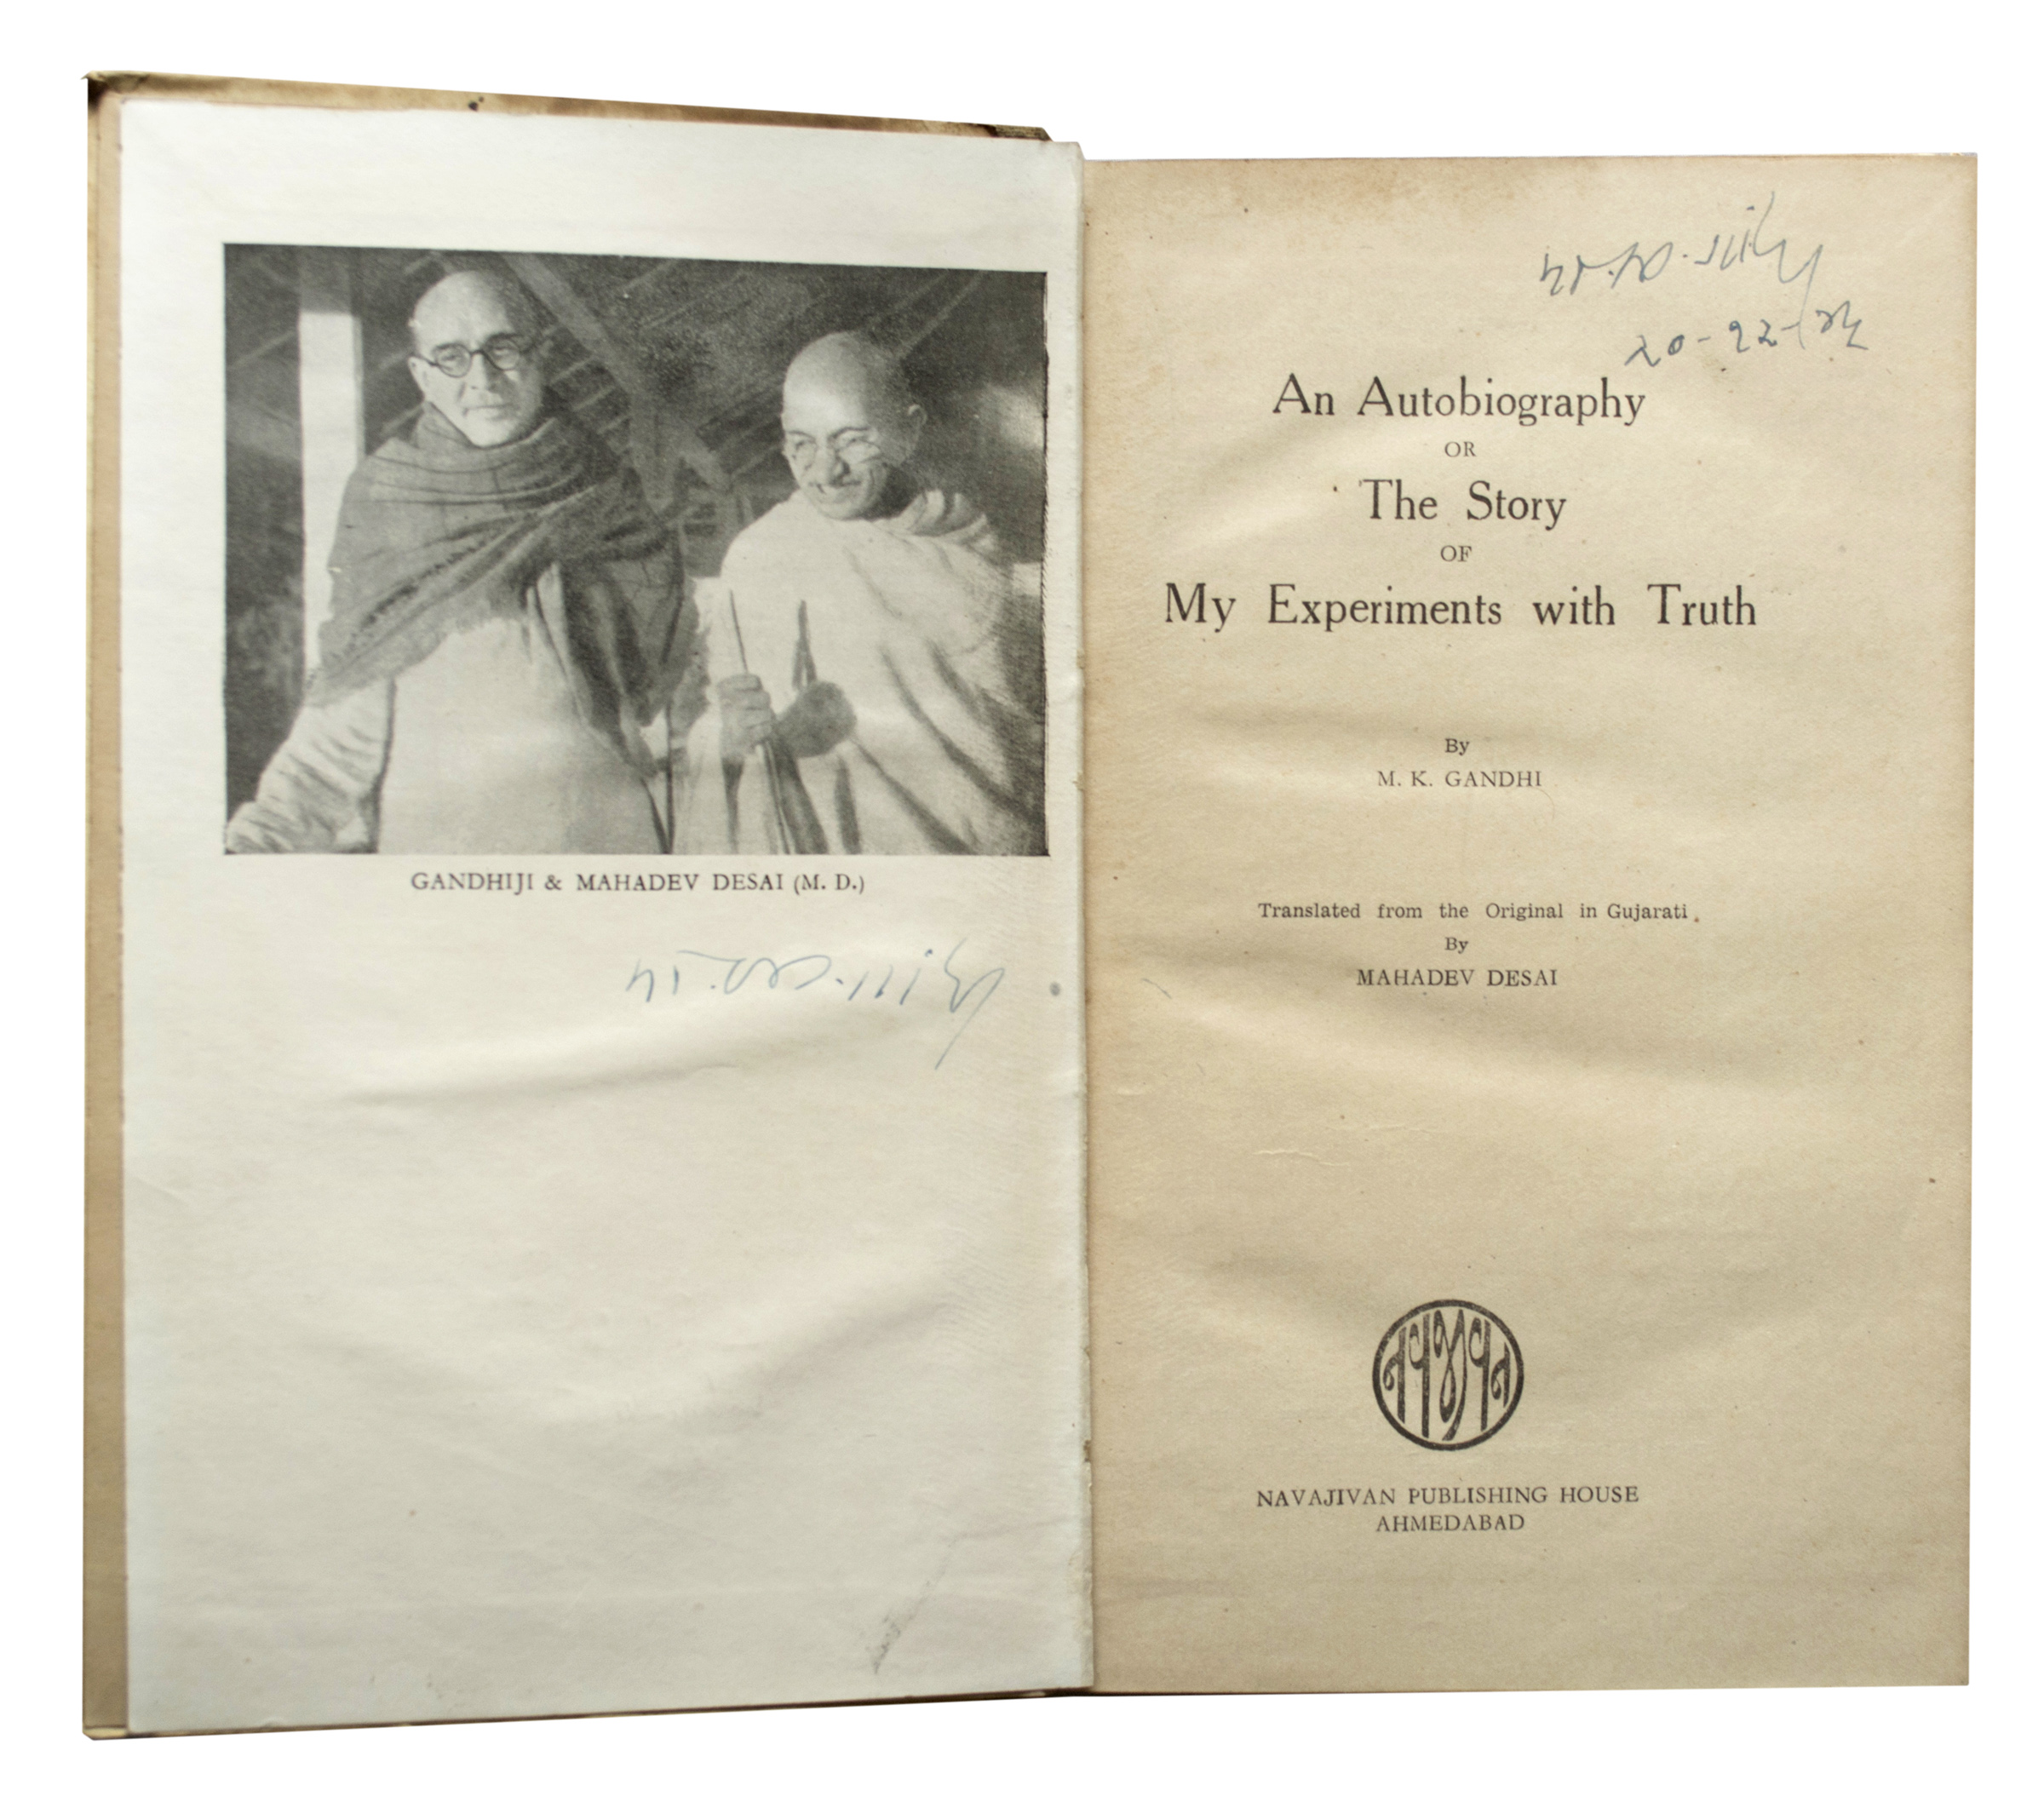 The Story of My Experiments With Truth: Mahatma Gandhi